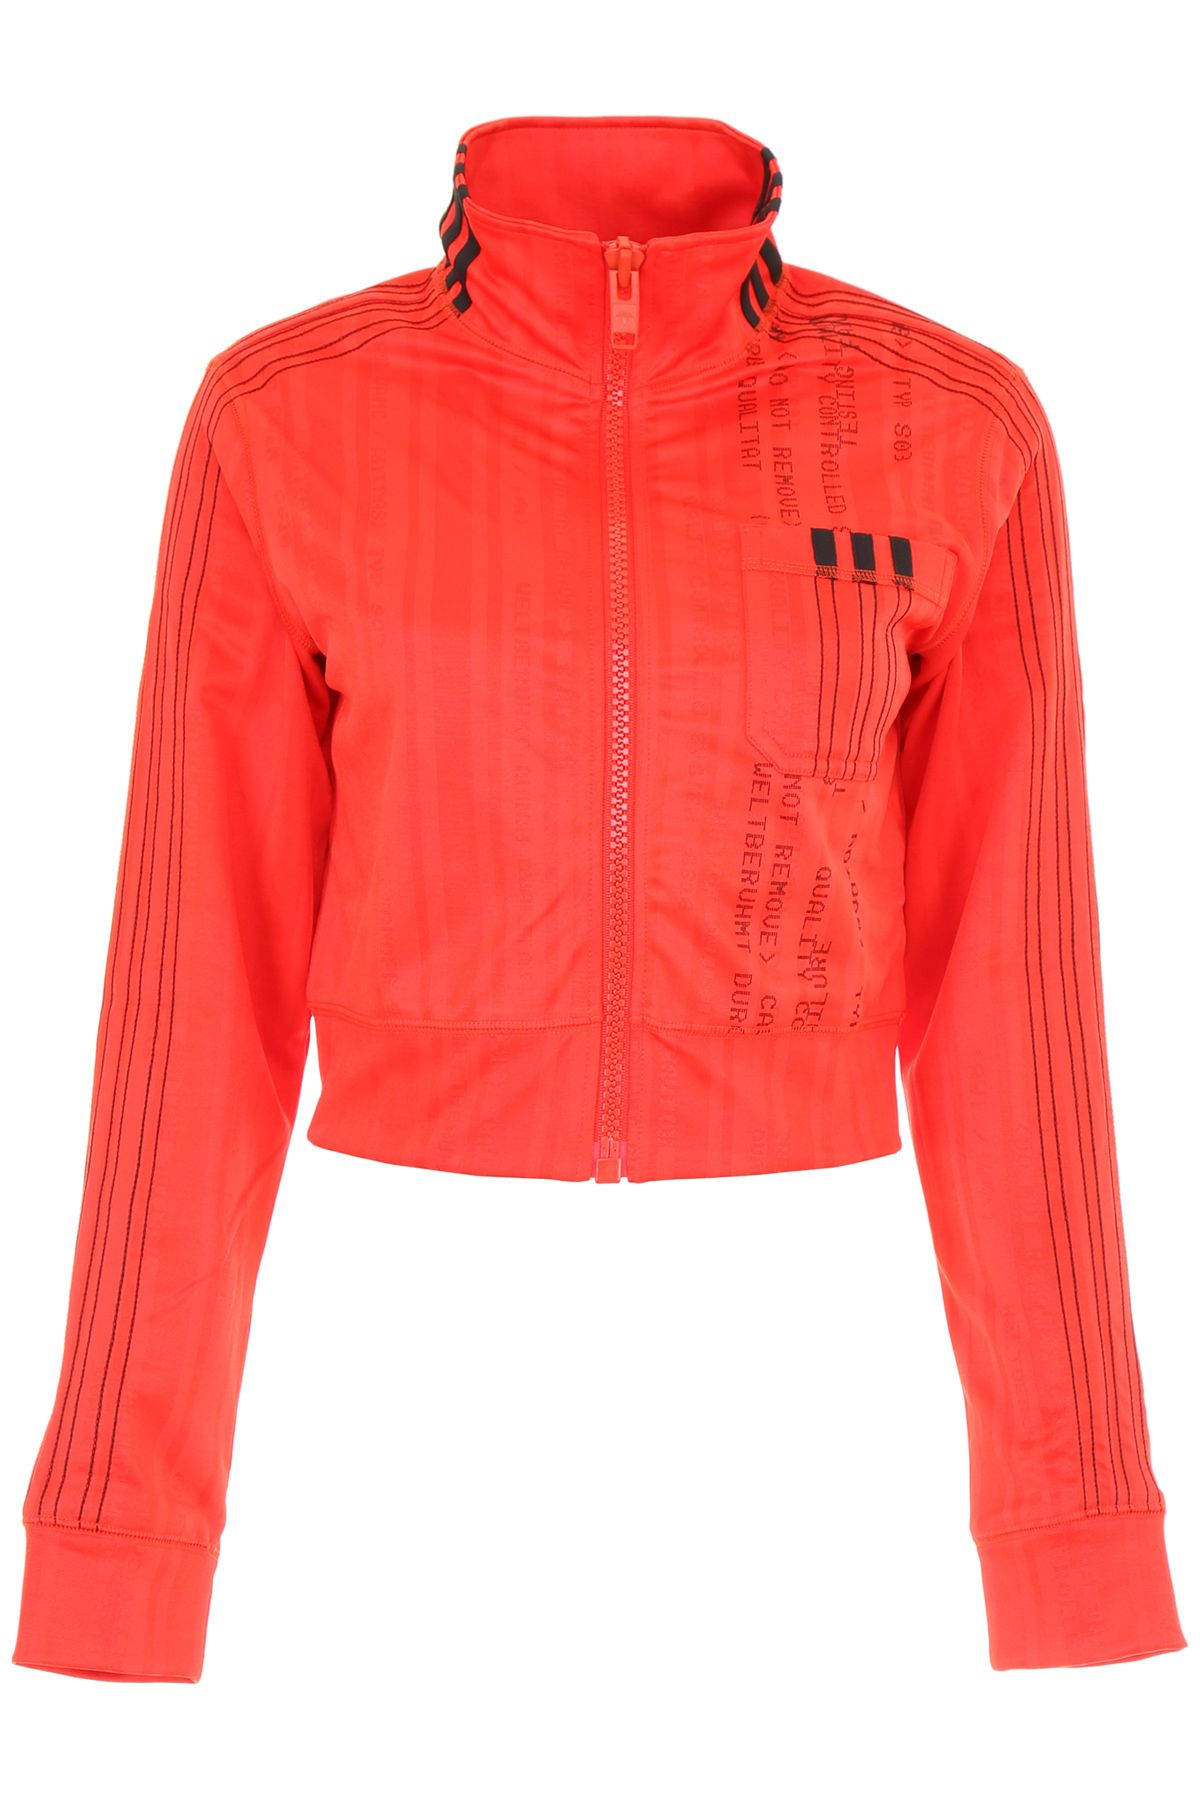 80cbc2c9d55 Adidas Originals by Alexander Wang Cropped Track Jacket - CORRED BLACK  (Red) ...